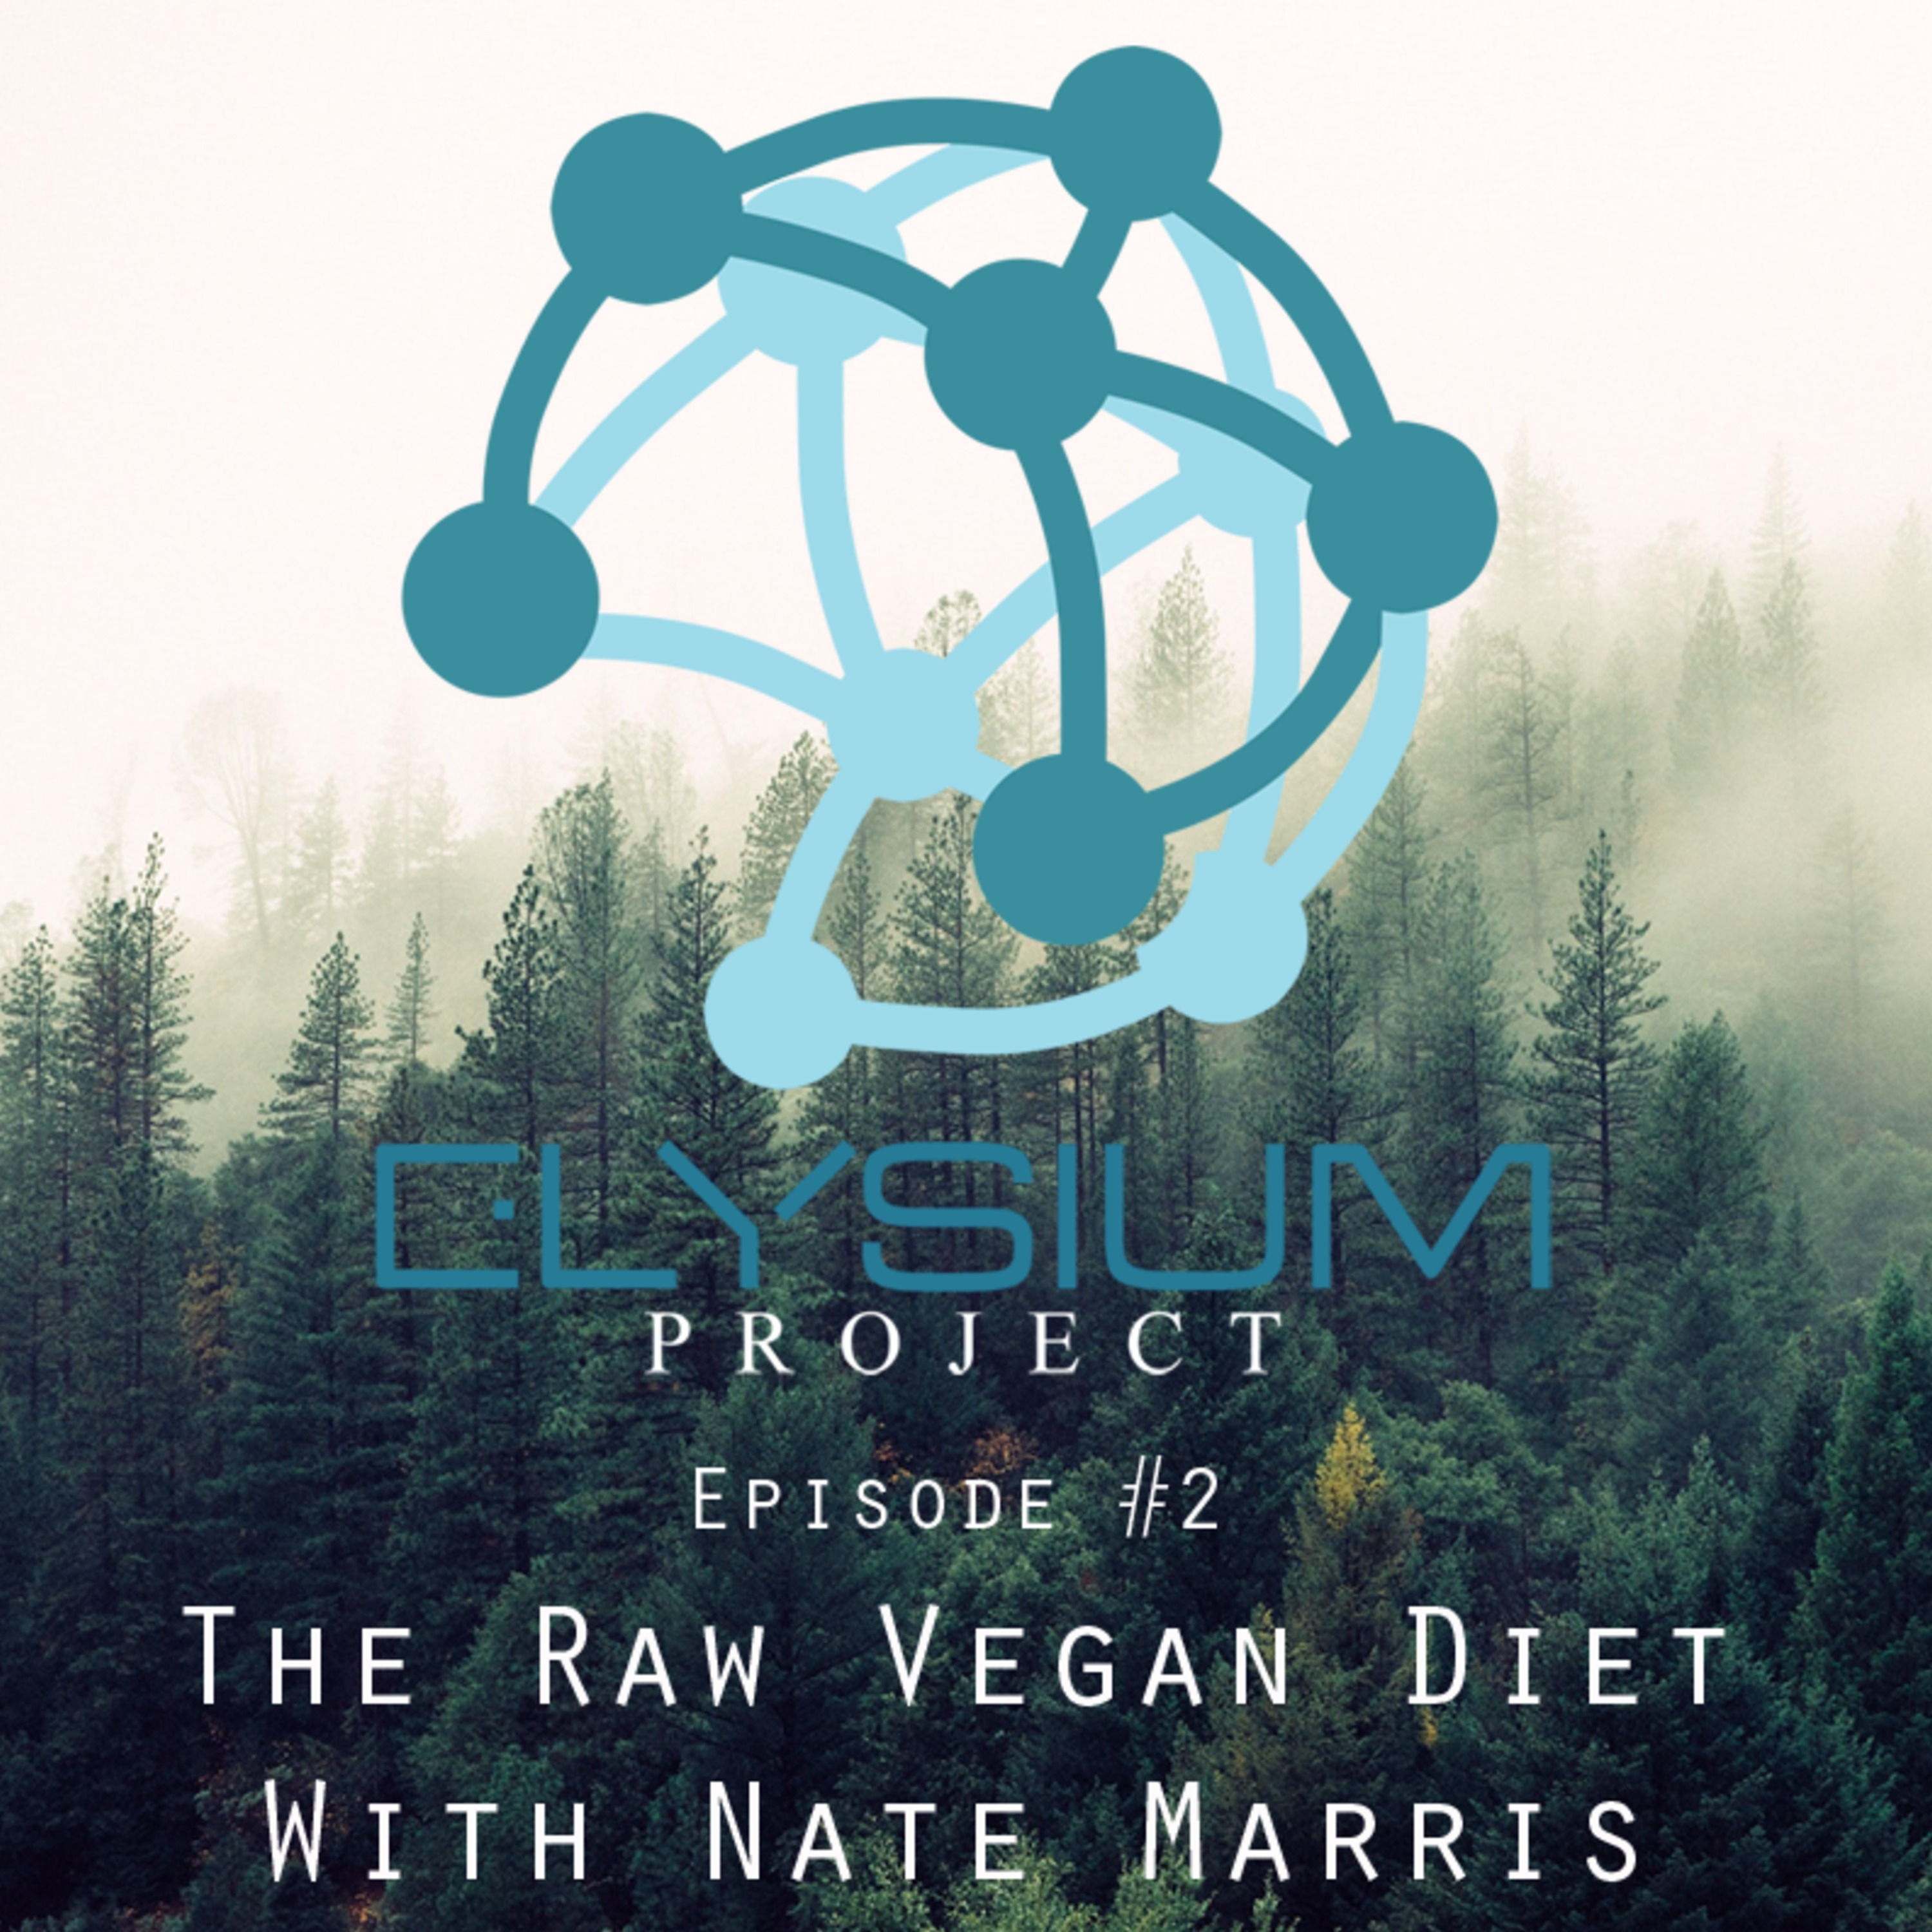 Episode 2: The Raw Vegan Diet with Nate Marris